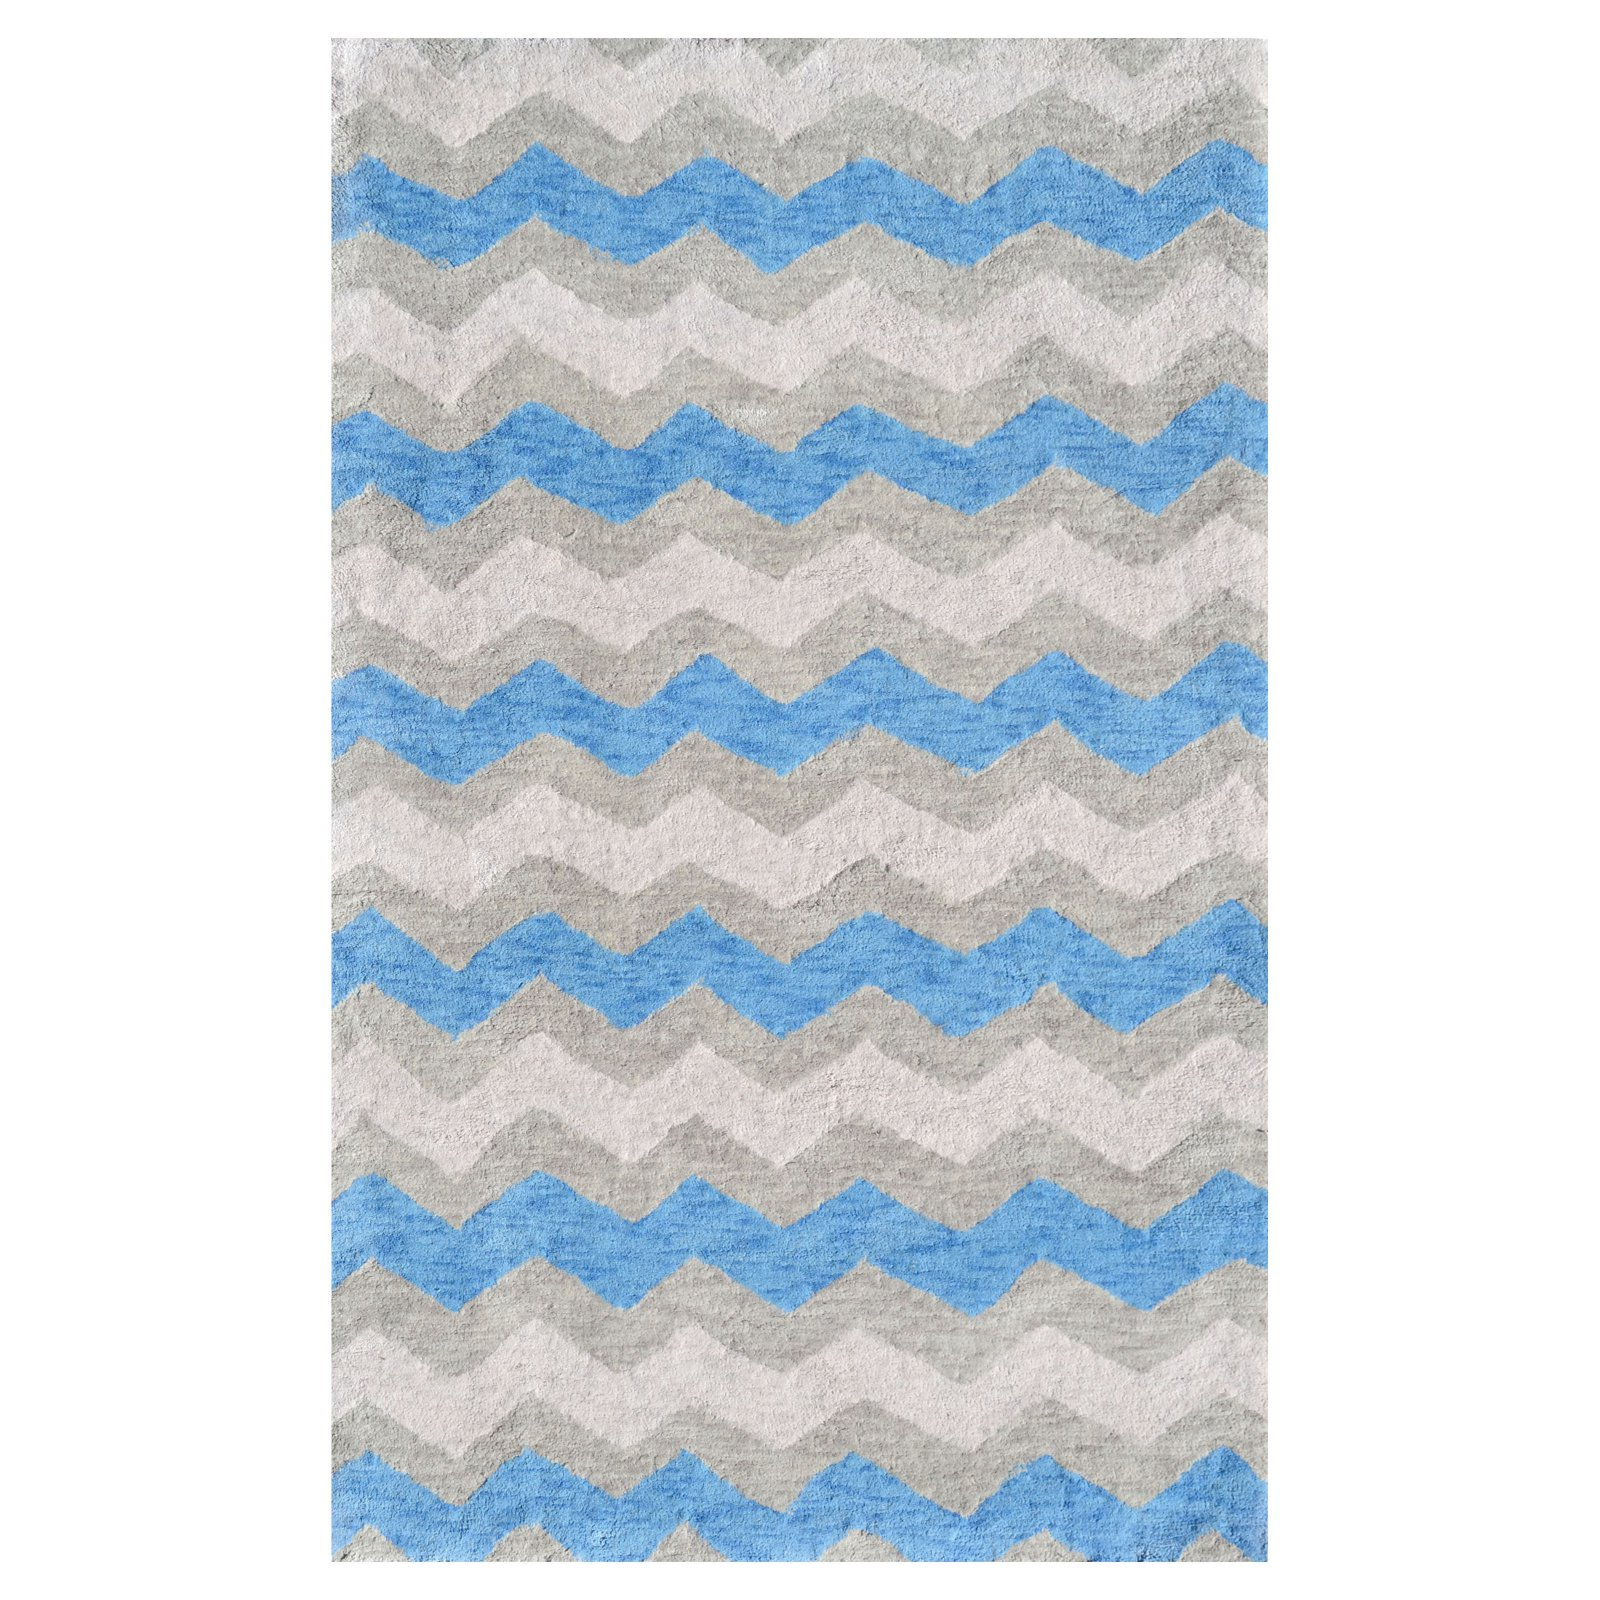 The Rug Market Ziggy-Blue Area Rug, 2.8' x 4.8'